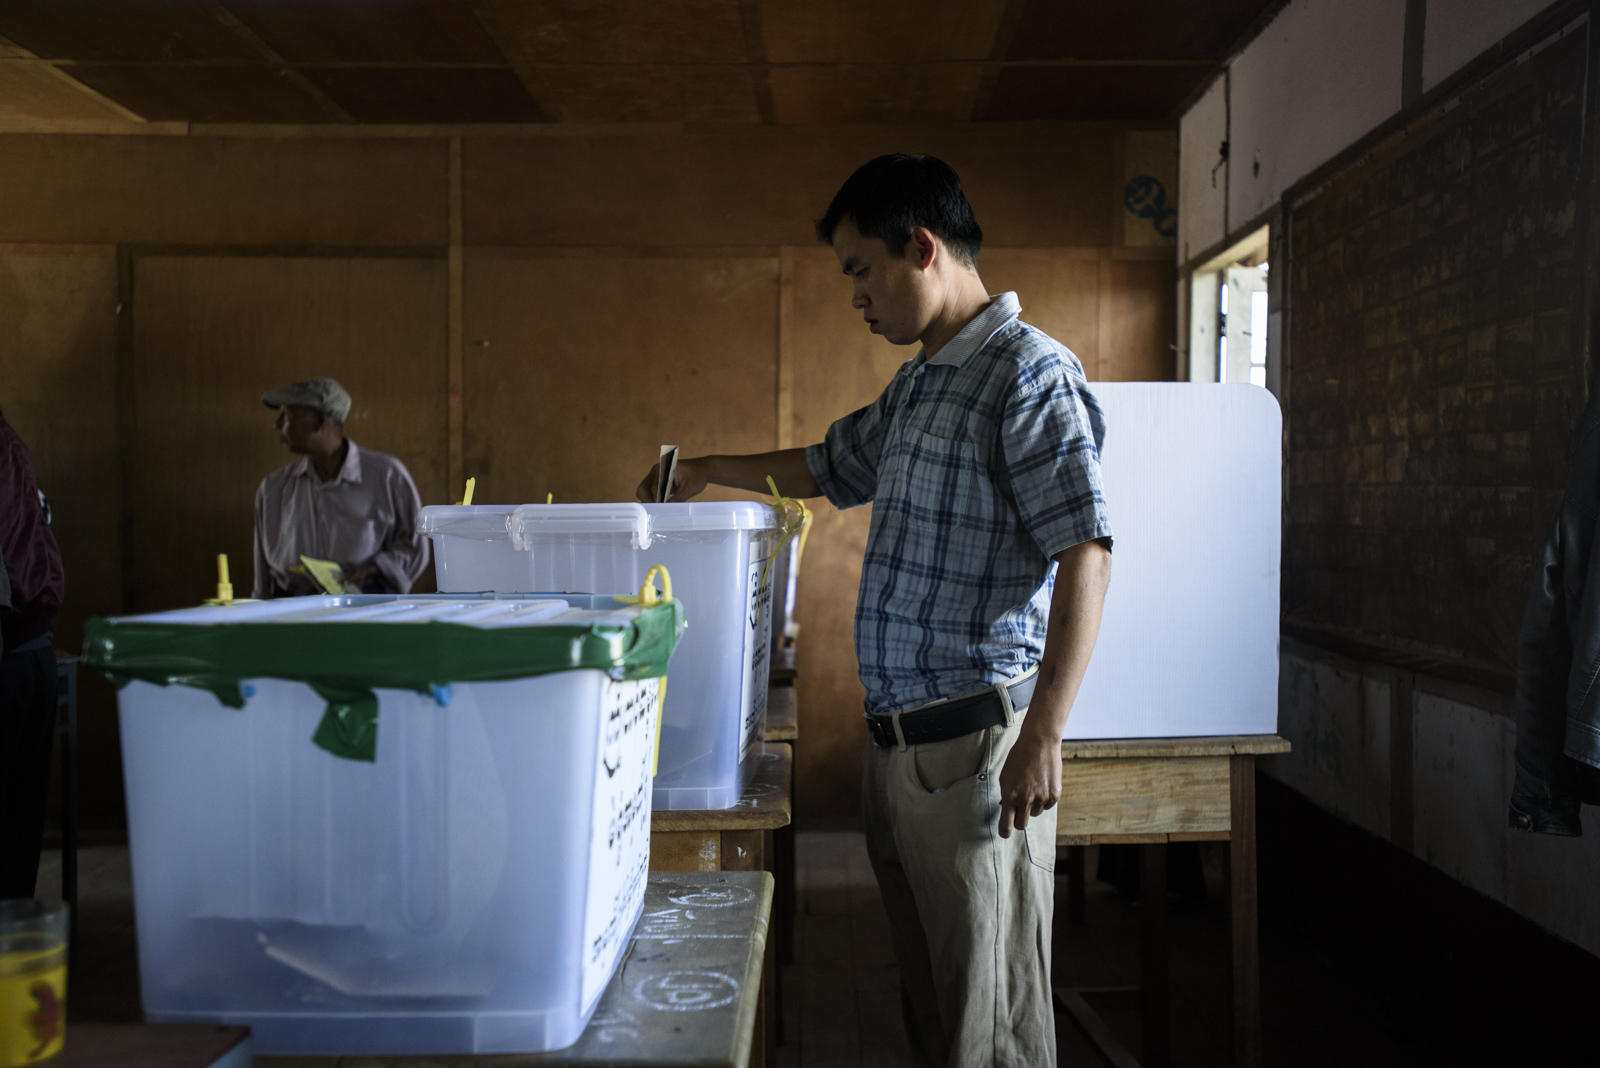 A man casts a ballot at a polling station in One Leng's district in Lashio, Myanmar.